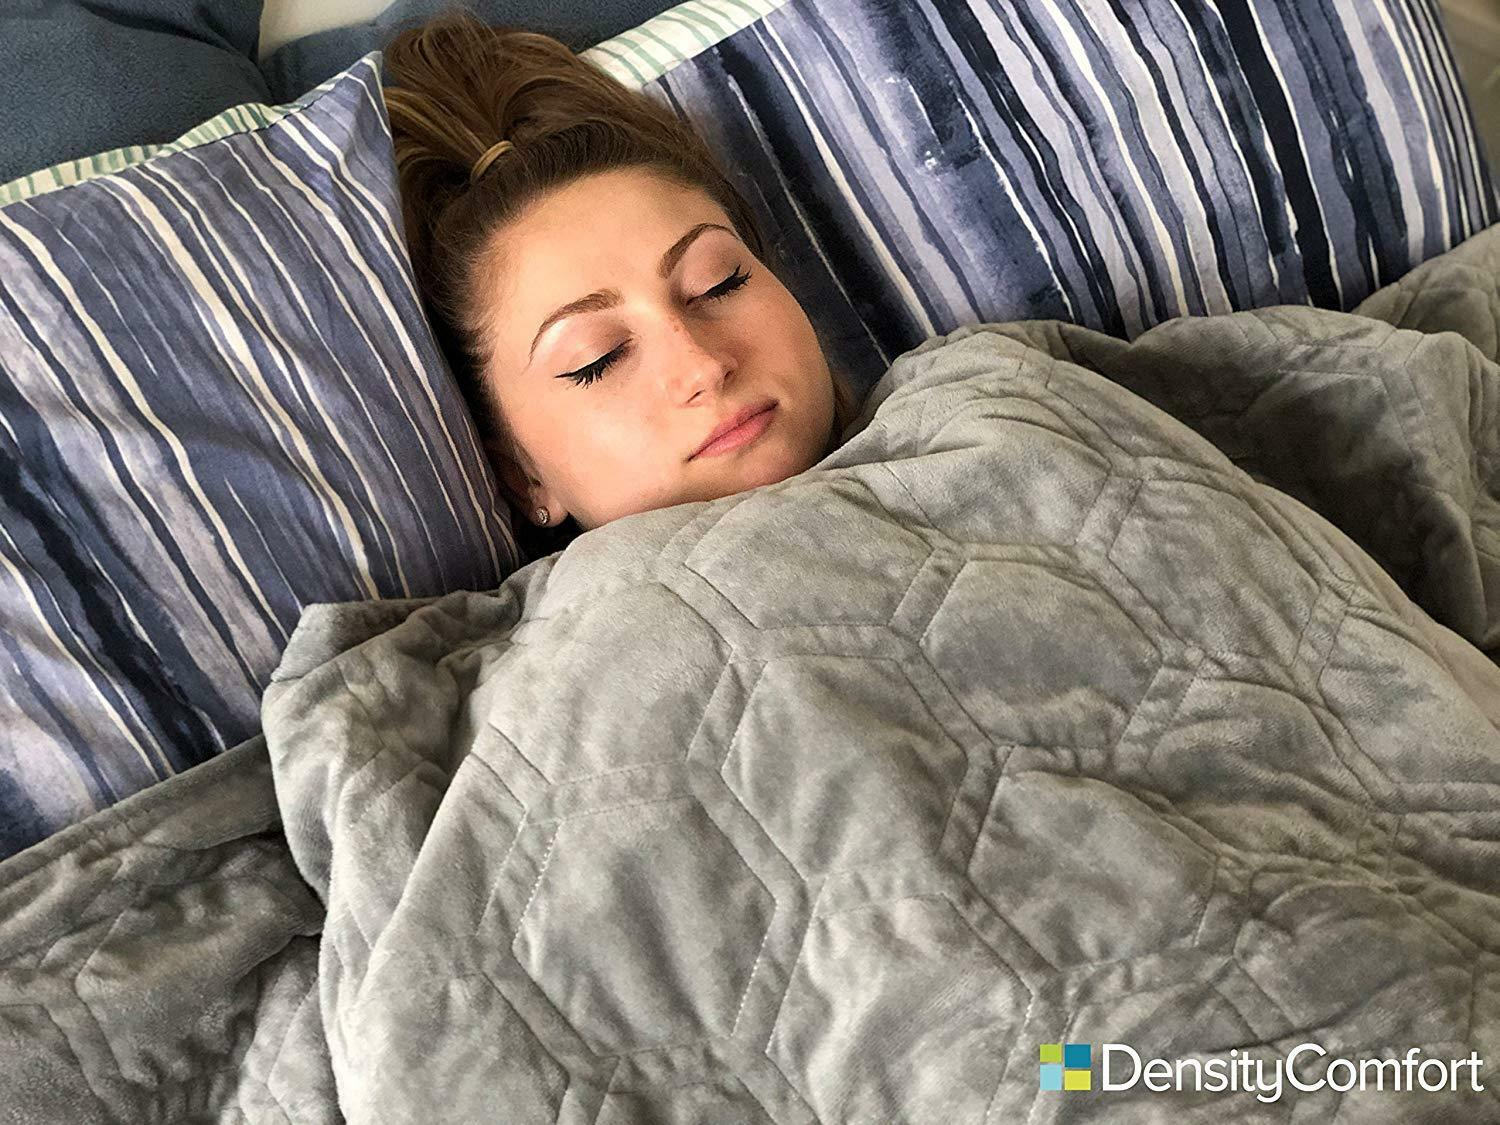 DensityComfort Weighted Blanket Adult Sensory Anxiety 15 lbs